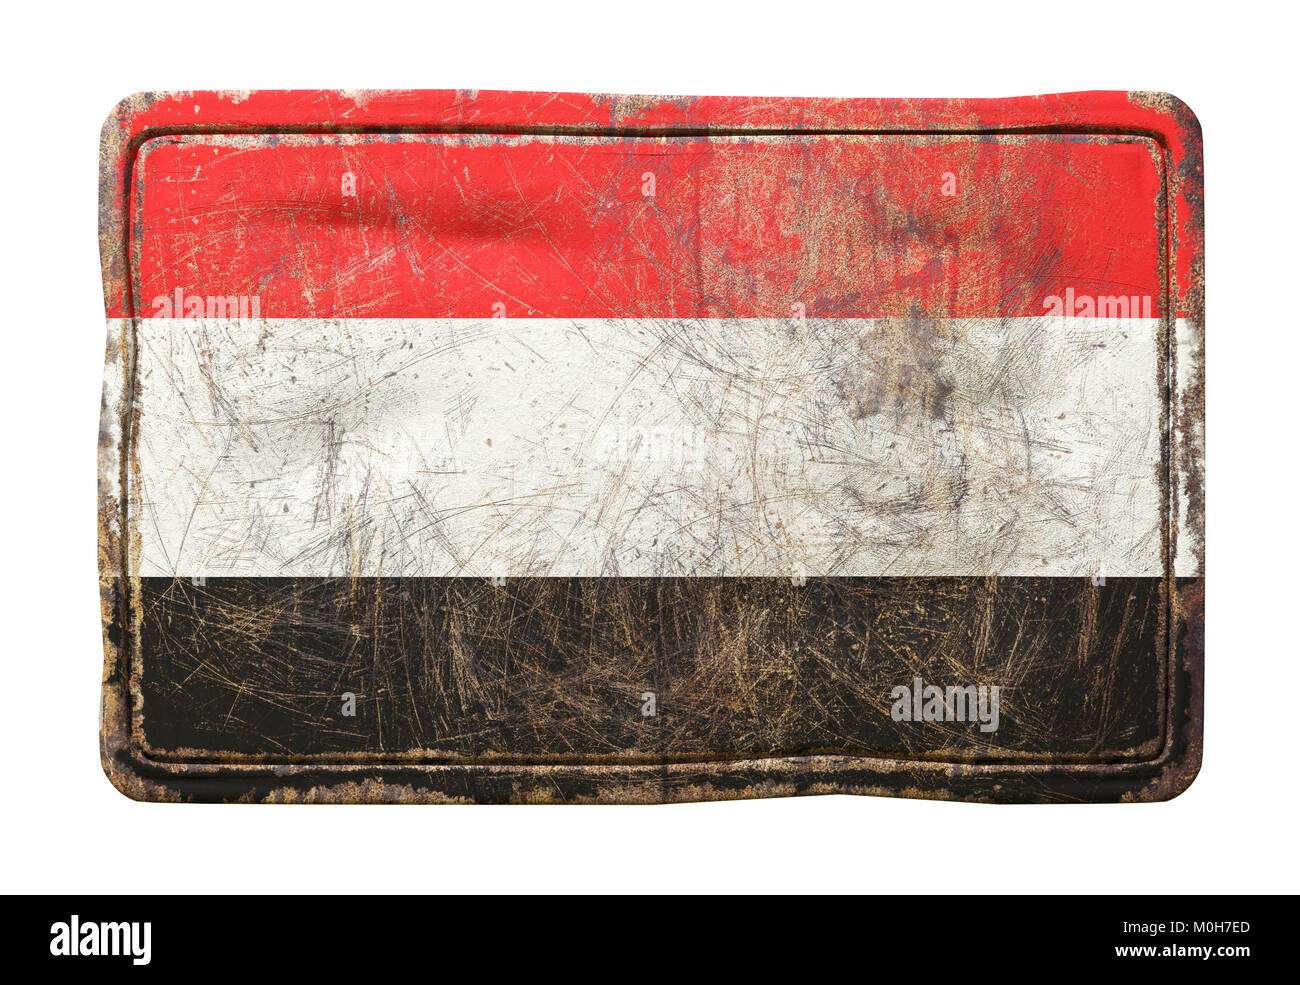 3d rendering of a Yemen flag over a rusty metallic plate. Isolated on white background. - Stock Image